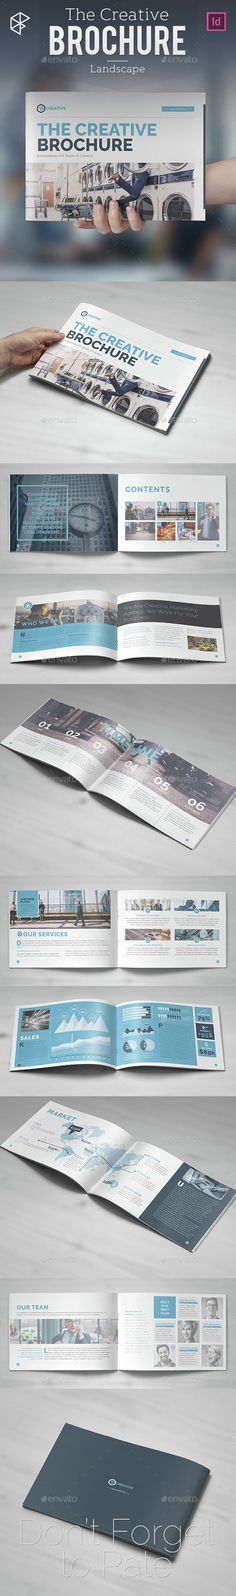 Brand Manual Guidelines Template InDesign INDD #design Download - it manual templates to download